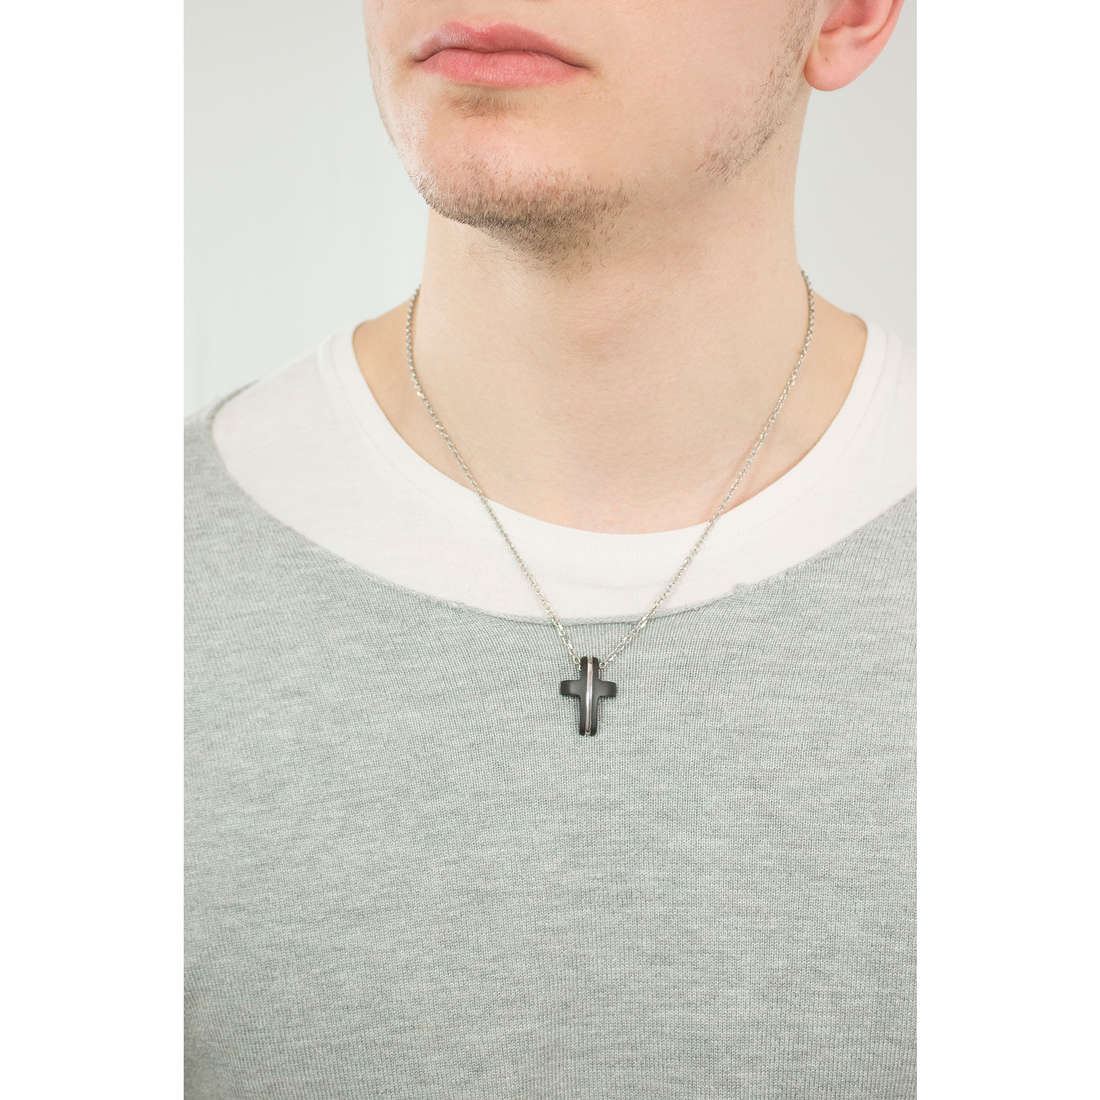 Brosway necklaces Medieval man BMV03 photo wearing